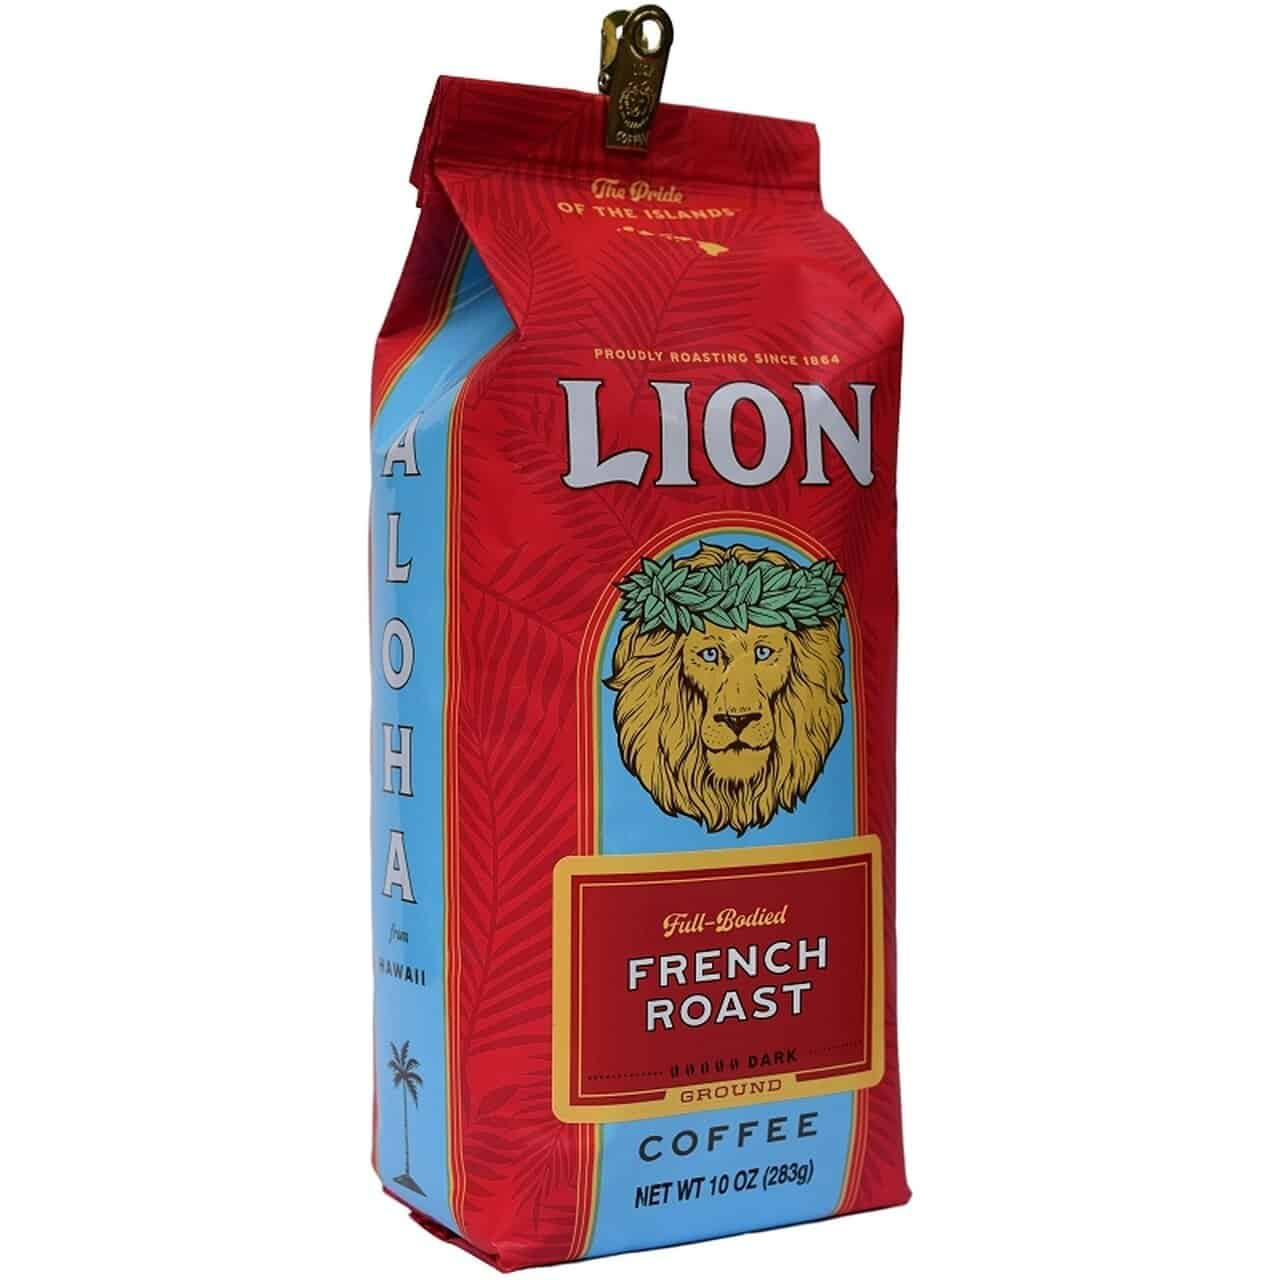 French Roast by Lion Coffee